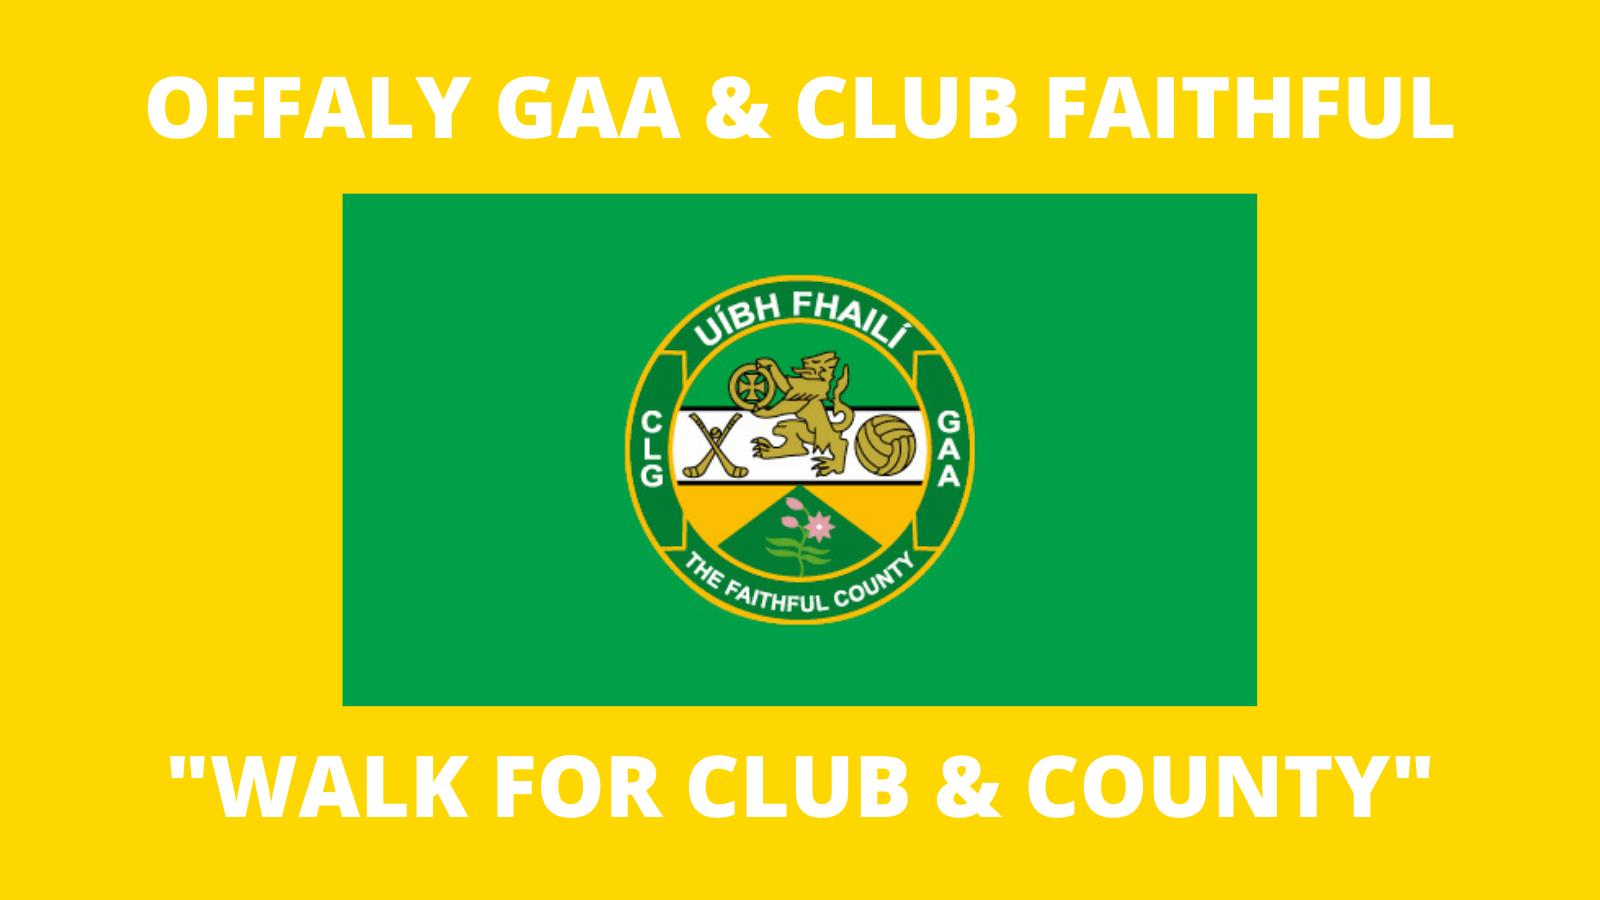 Offaly GAA & Club Faithful Fund-Raising Walk